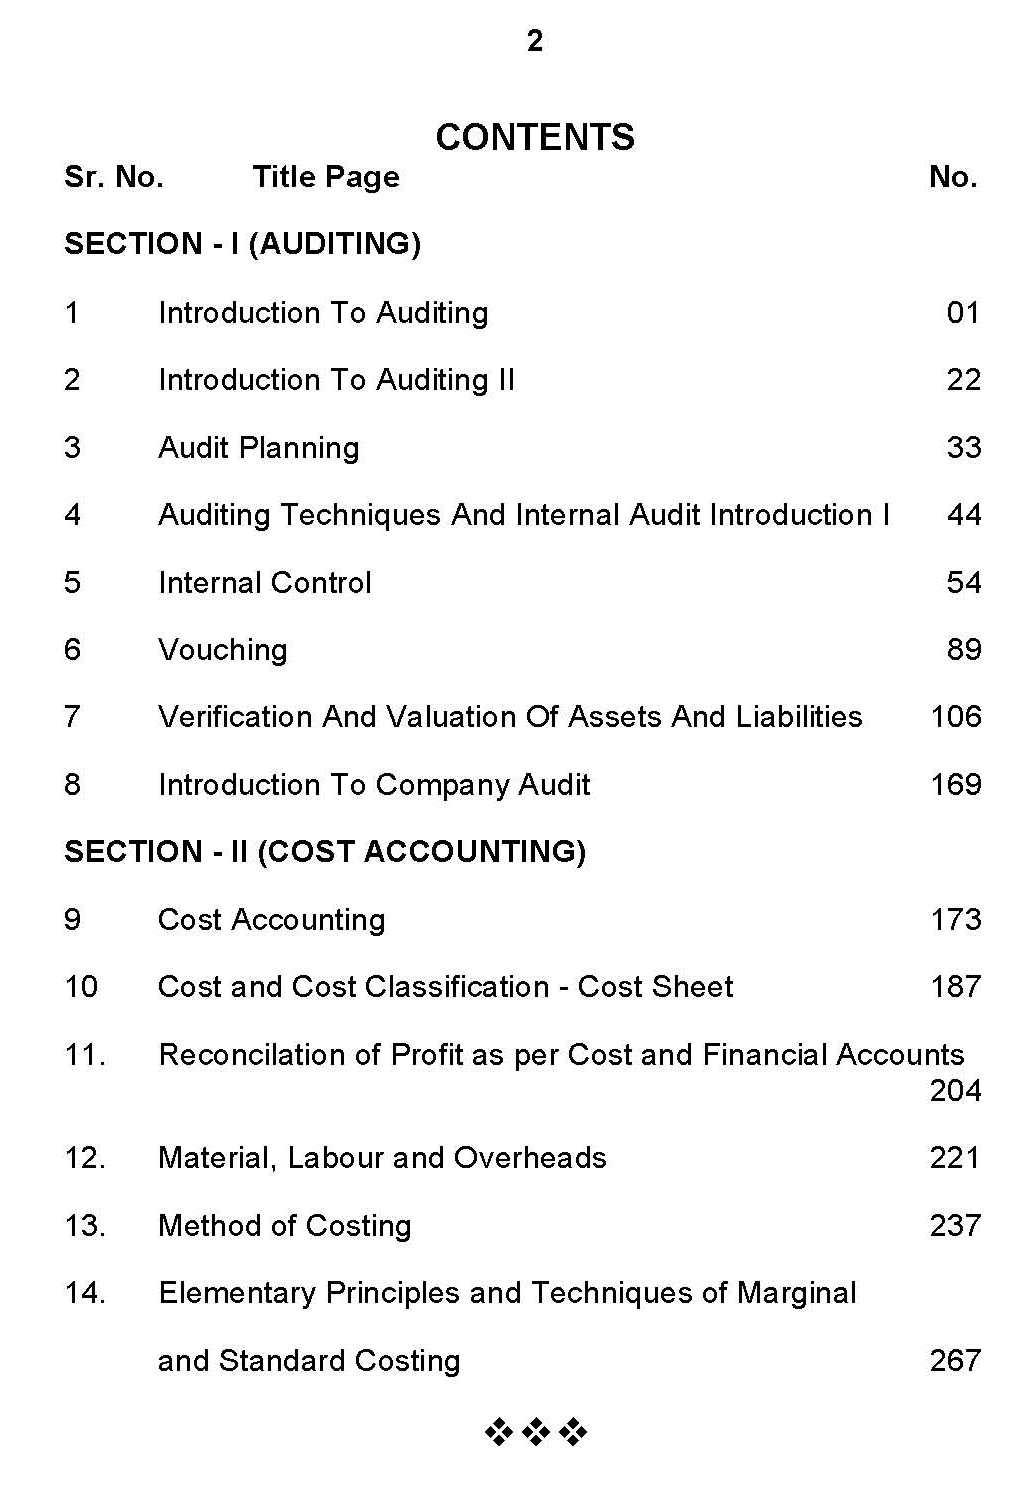 exam case financial accounting Financial accounting catalog number: accx211 description: the excelsior college examination in financial accounting measures knowledge and understanding of material.